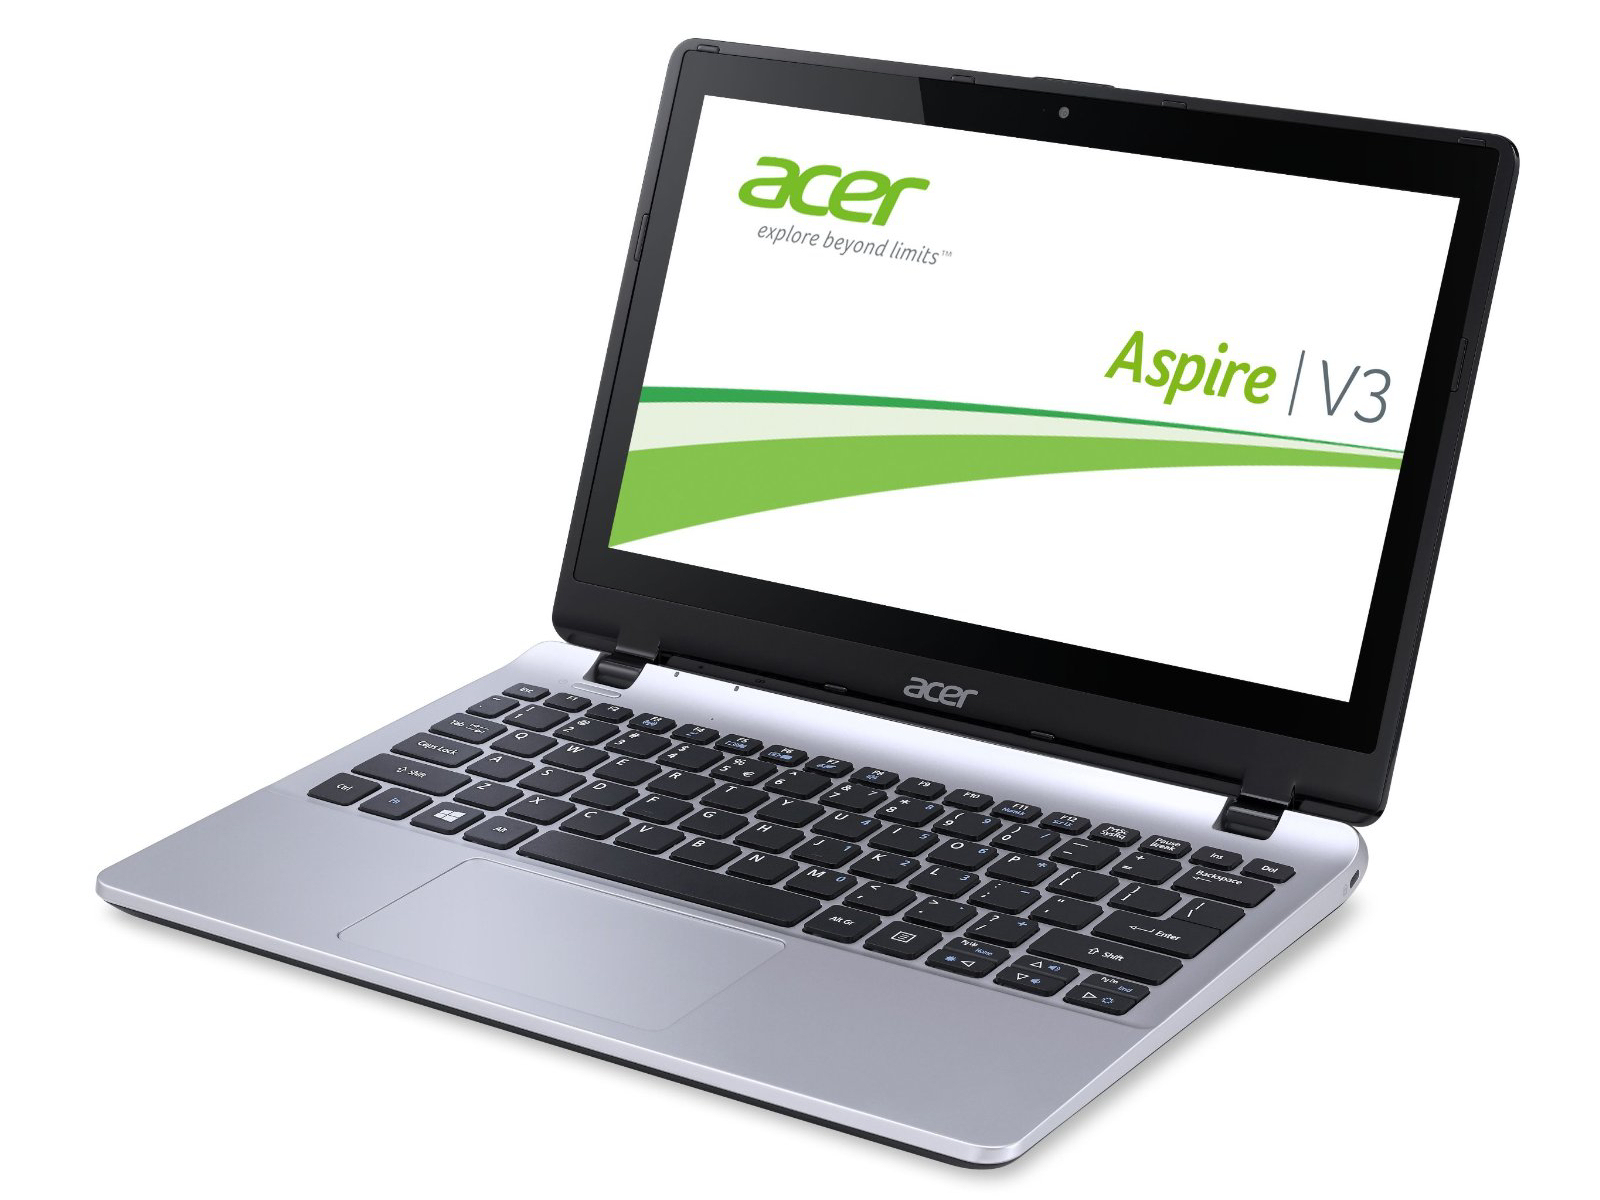 ACER ASPIRE V3-112P BROADCOM WLAN WINDOWS 10 DRIVER DOWNLOAD